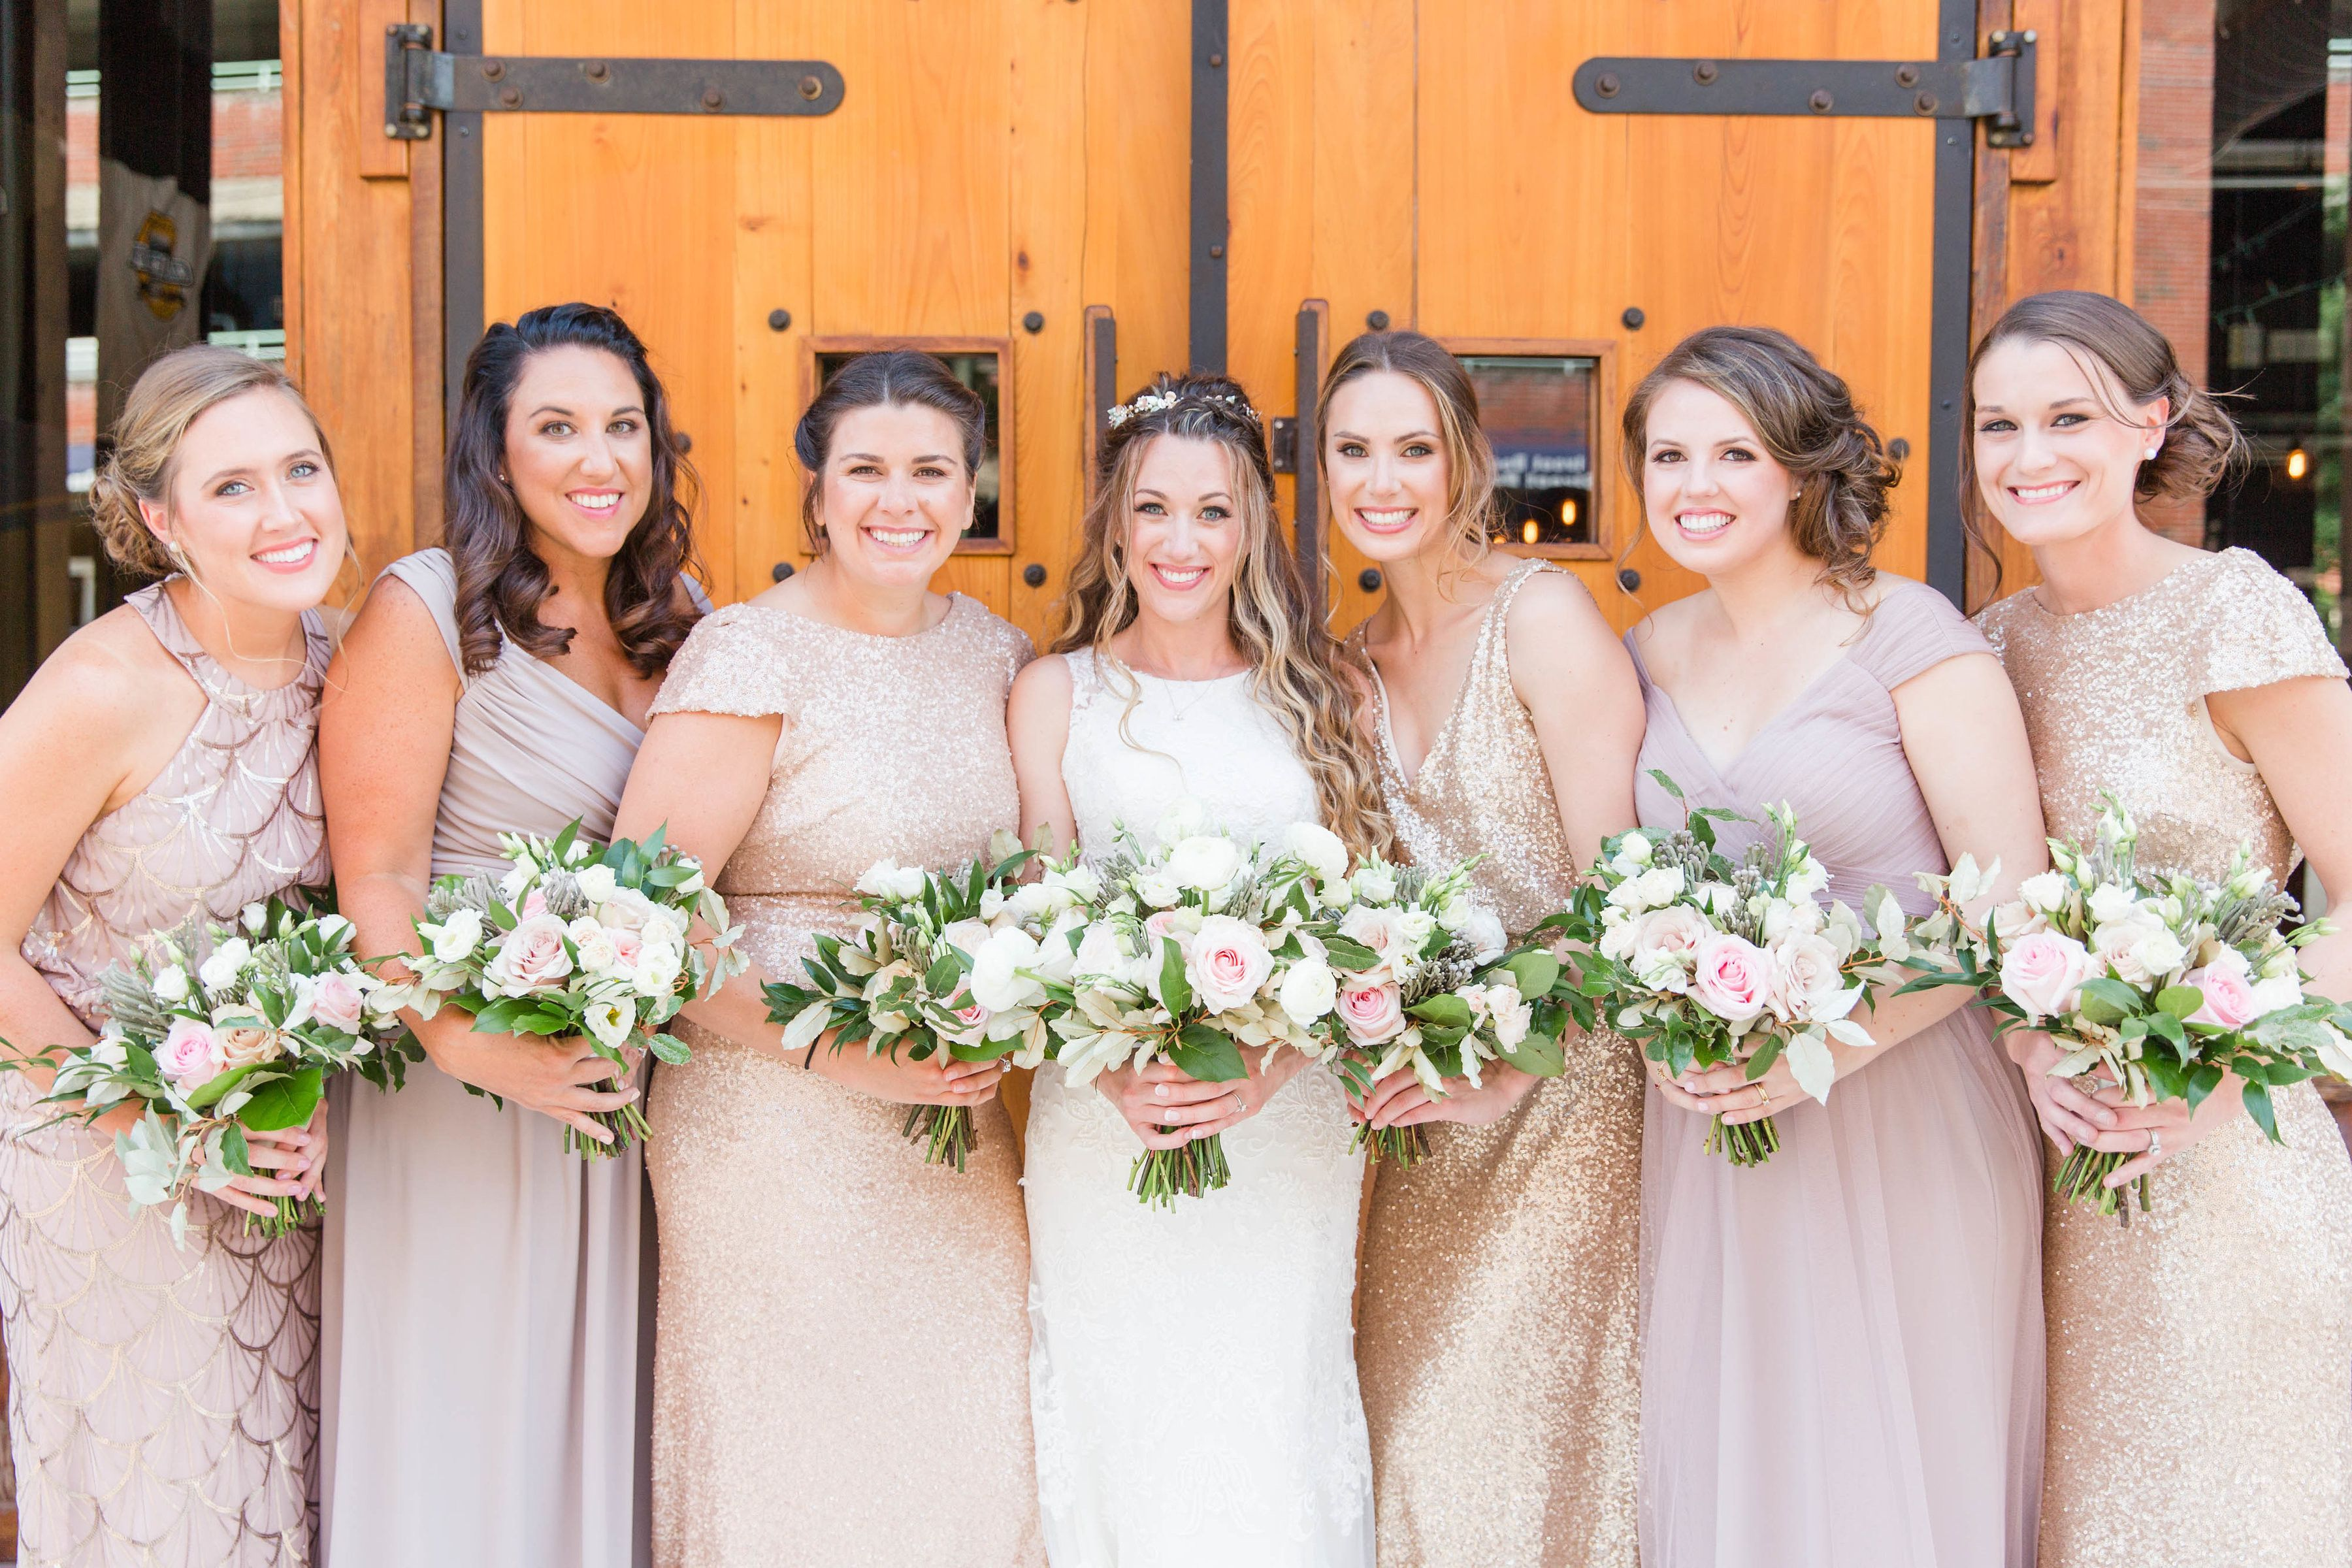 Find Wedding Floral Inspiration From Designs By Dillon, A